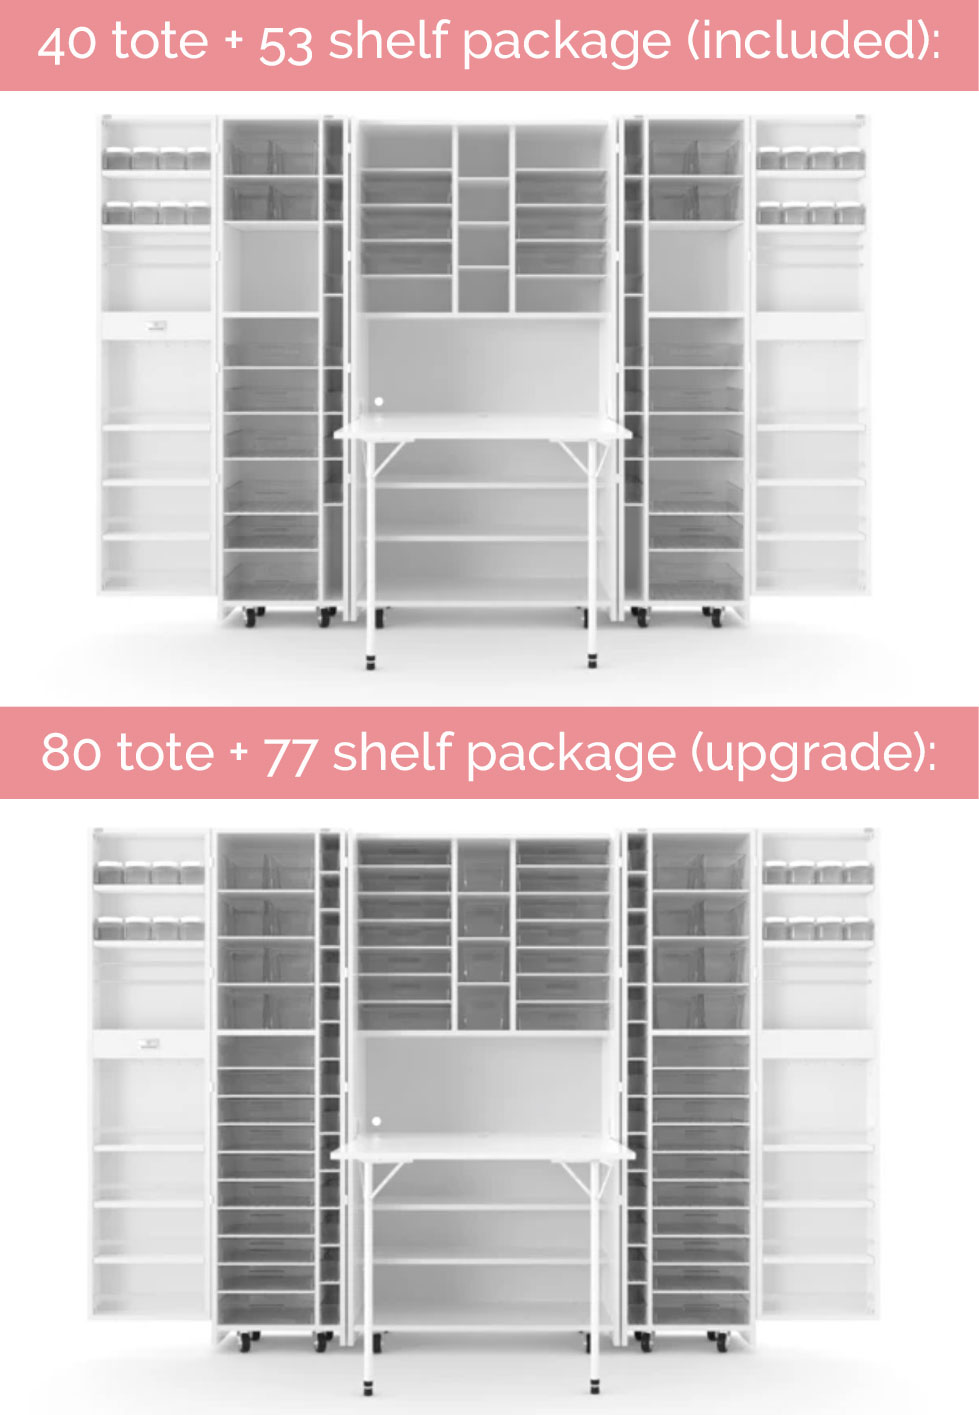 The DreamBox craft storage system